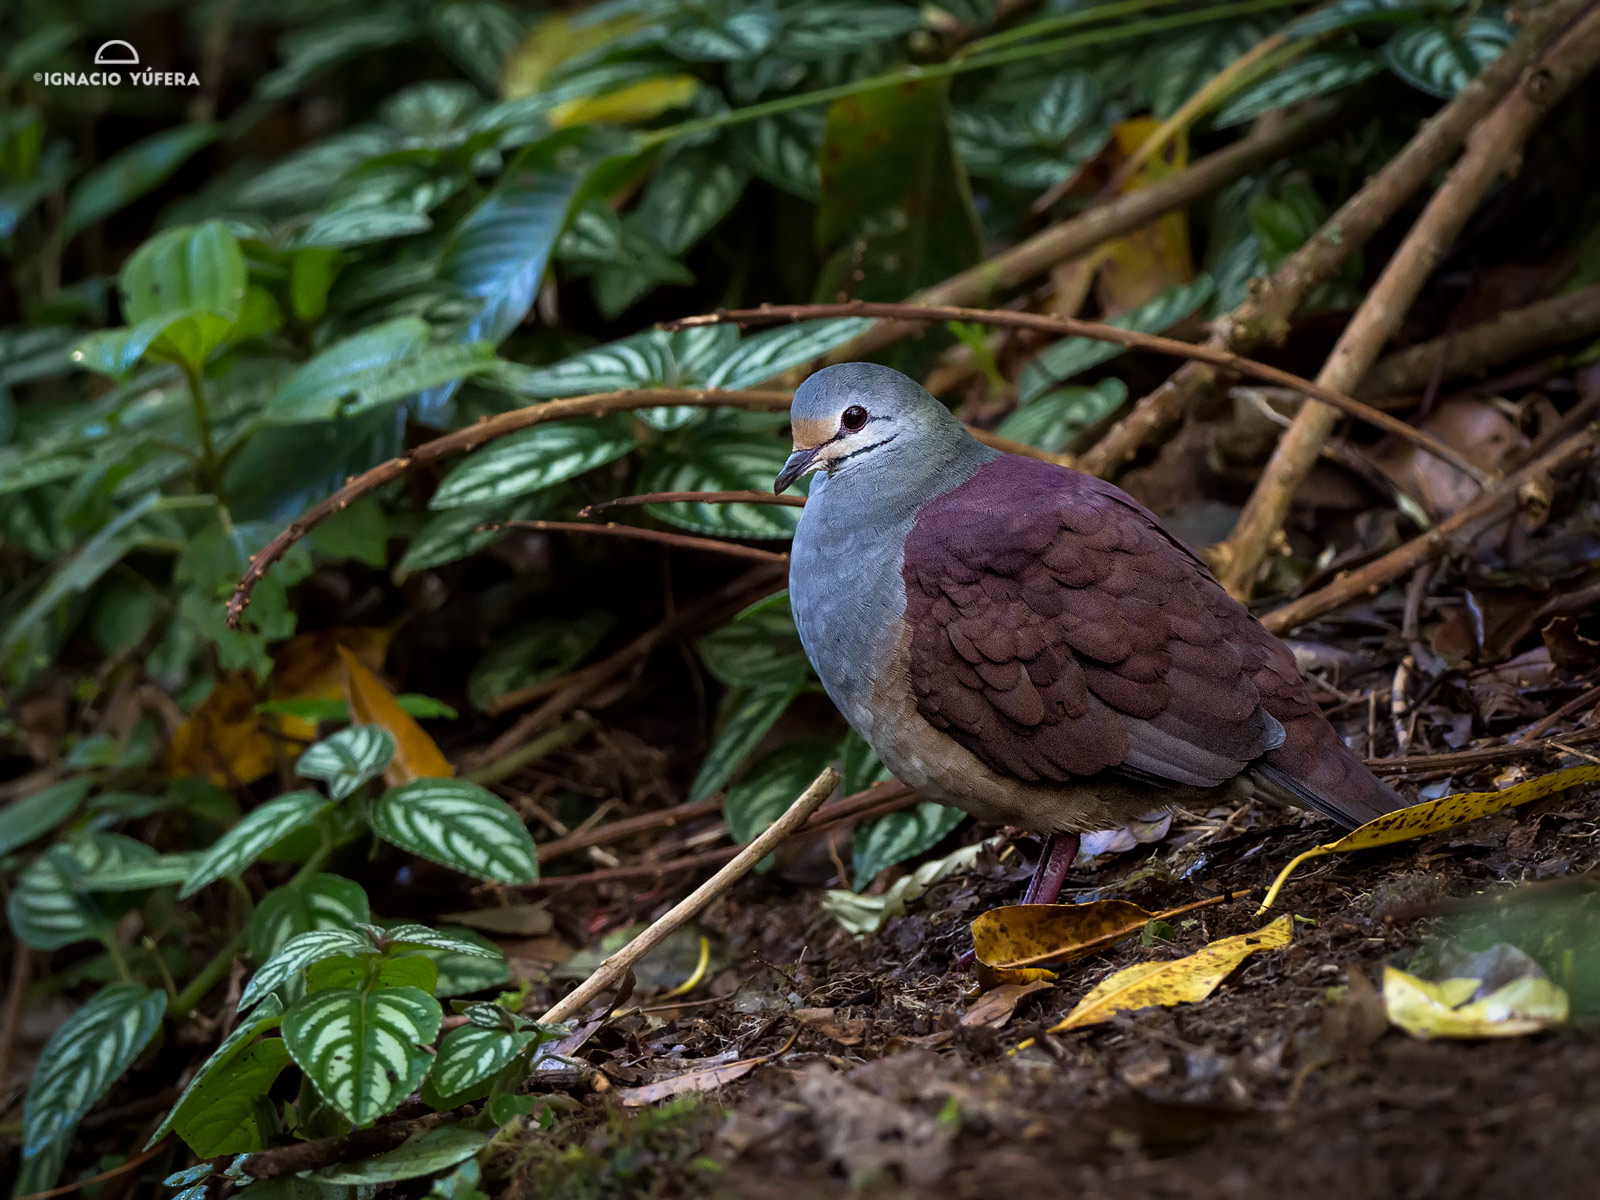 Buff-fronted Quail-dove (Geotrygon costaricensis), Chiriquí highlands, Panama